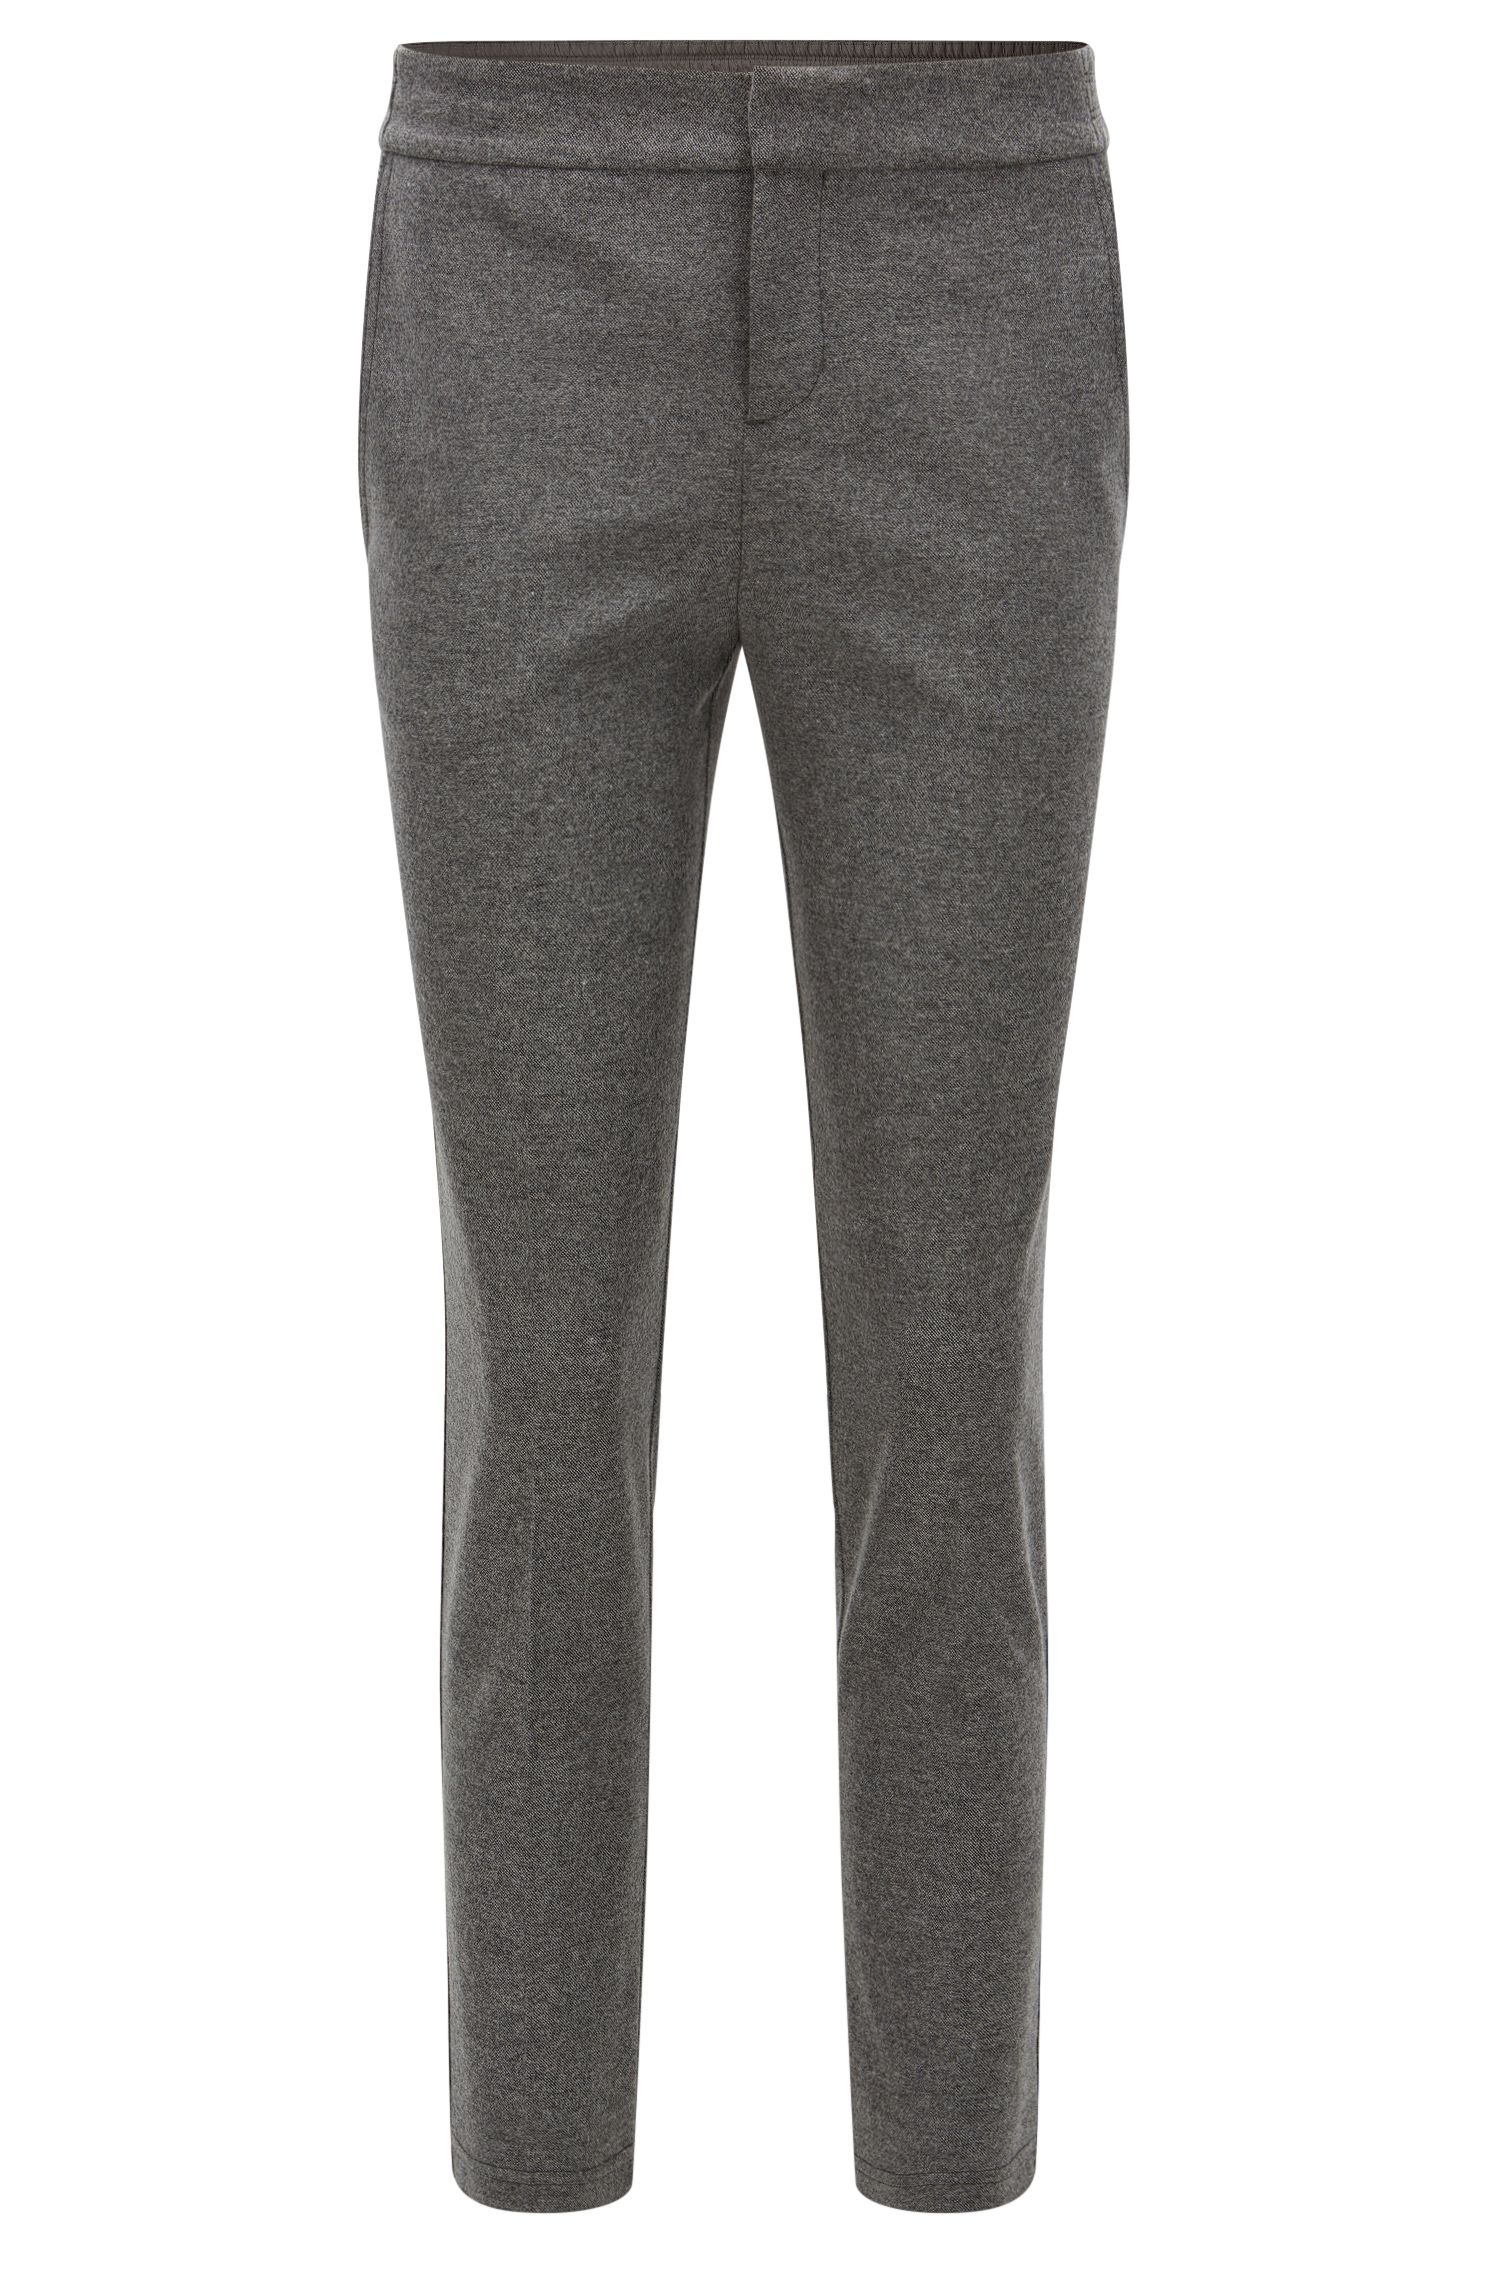 Pantaloni regular fit in flanella accoppiata con vita elastica